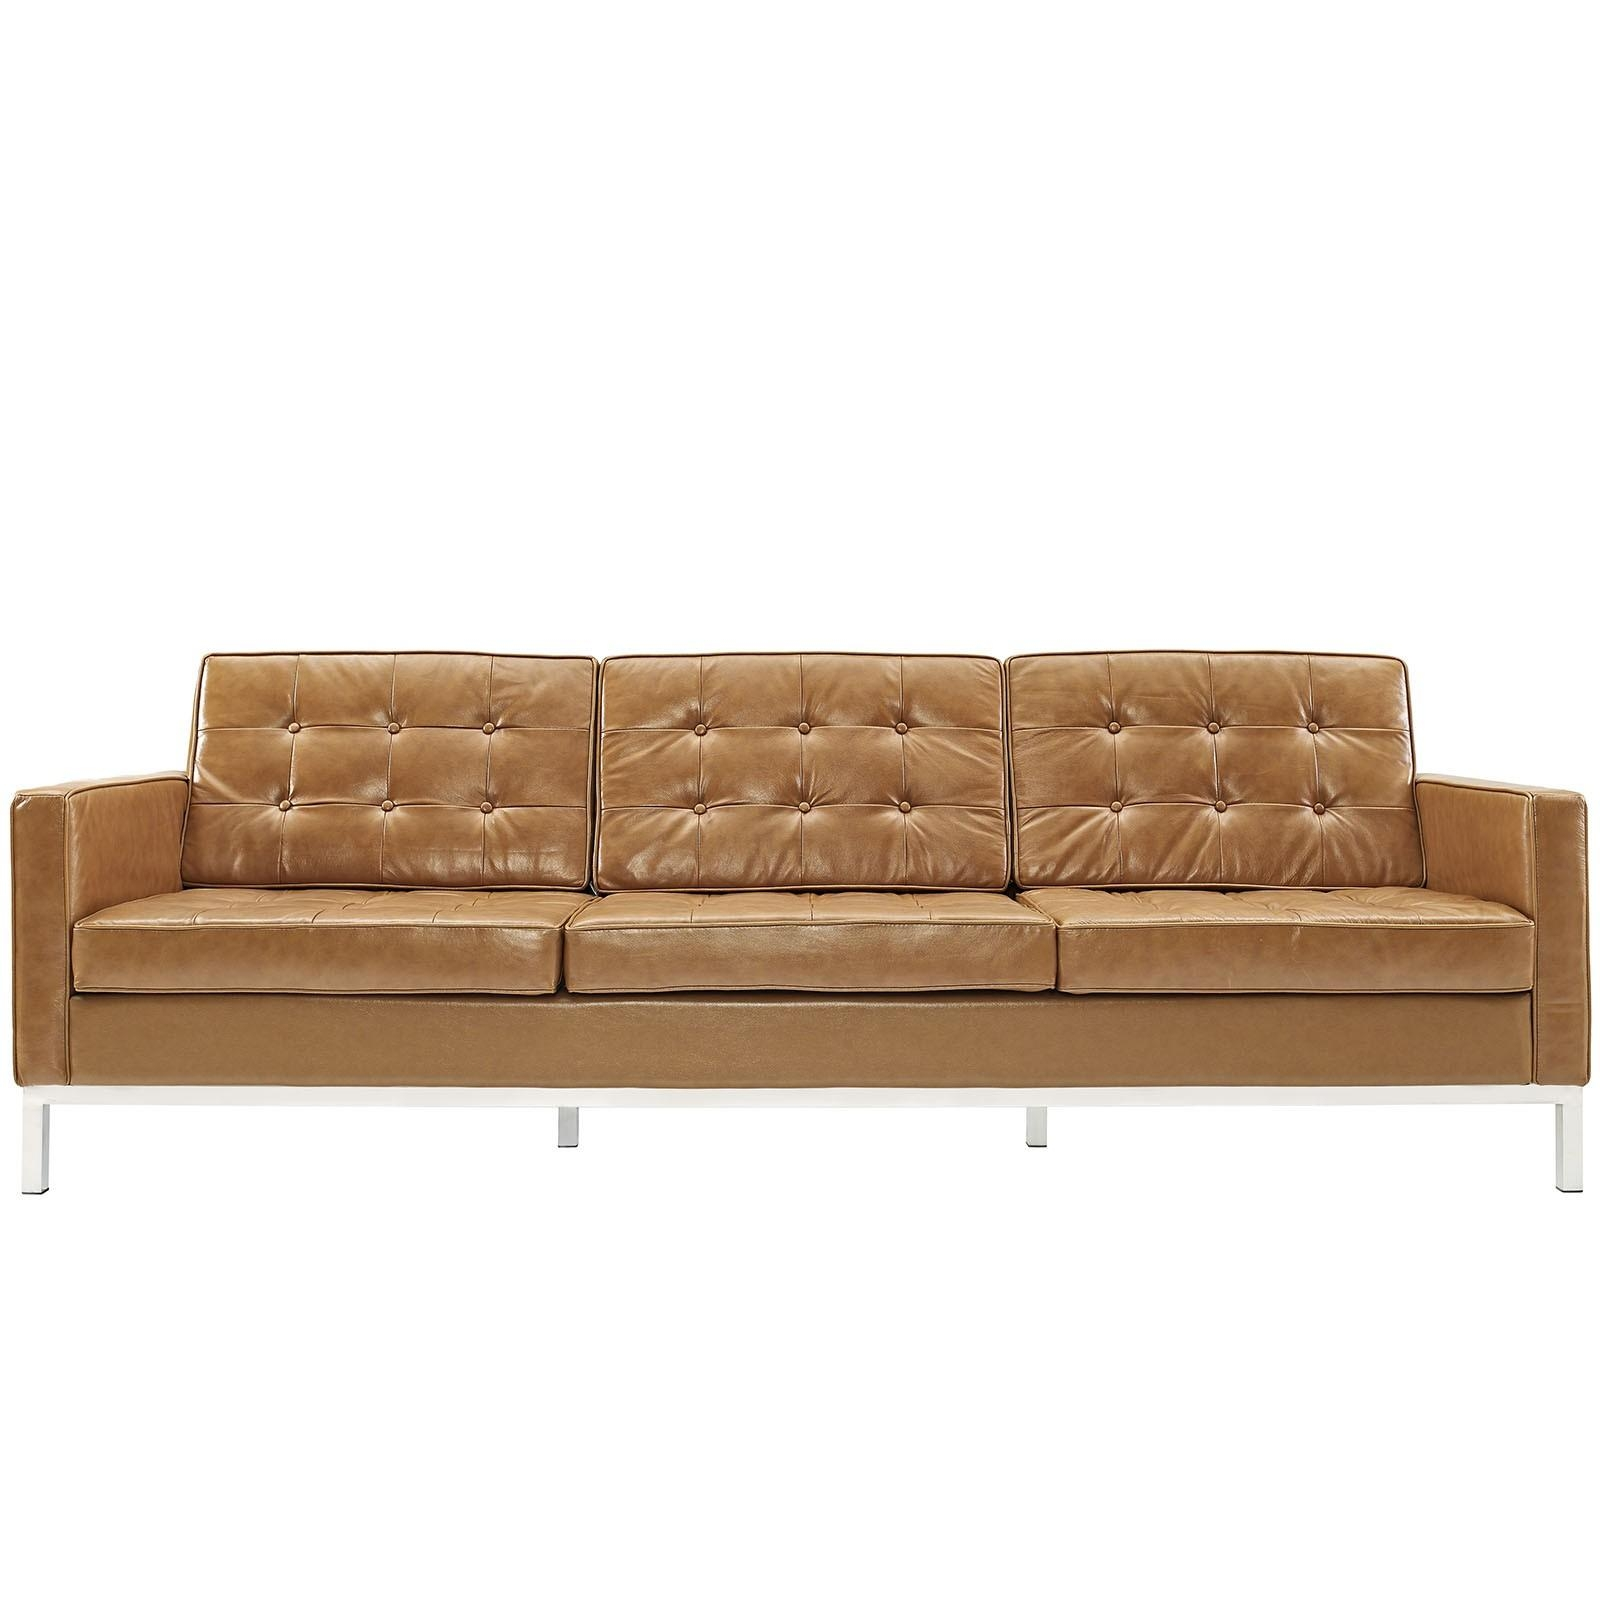 Florence Knoll Sofa Design #14190 With Florence Knoll Leather Sofas (Image 9 of 20)